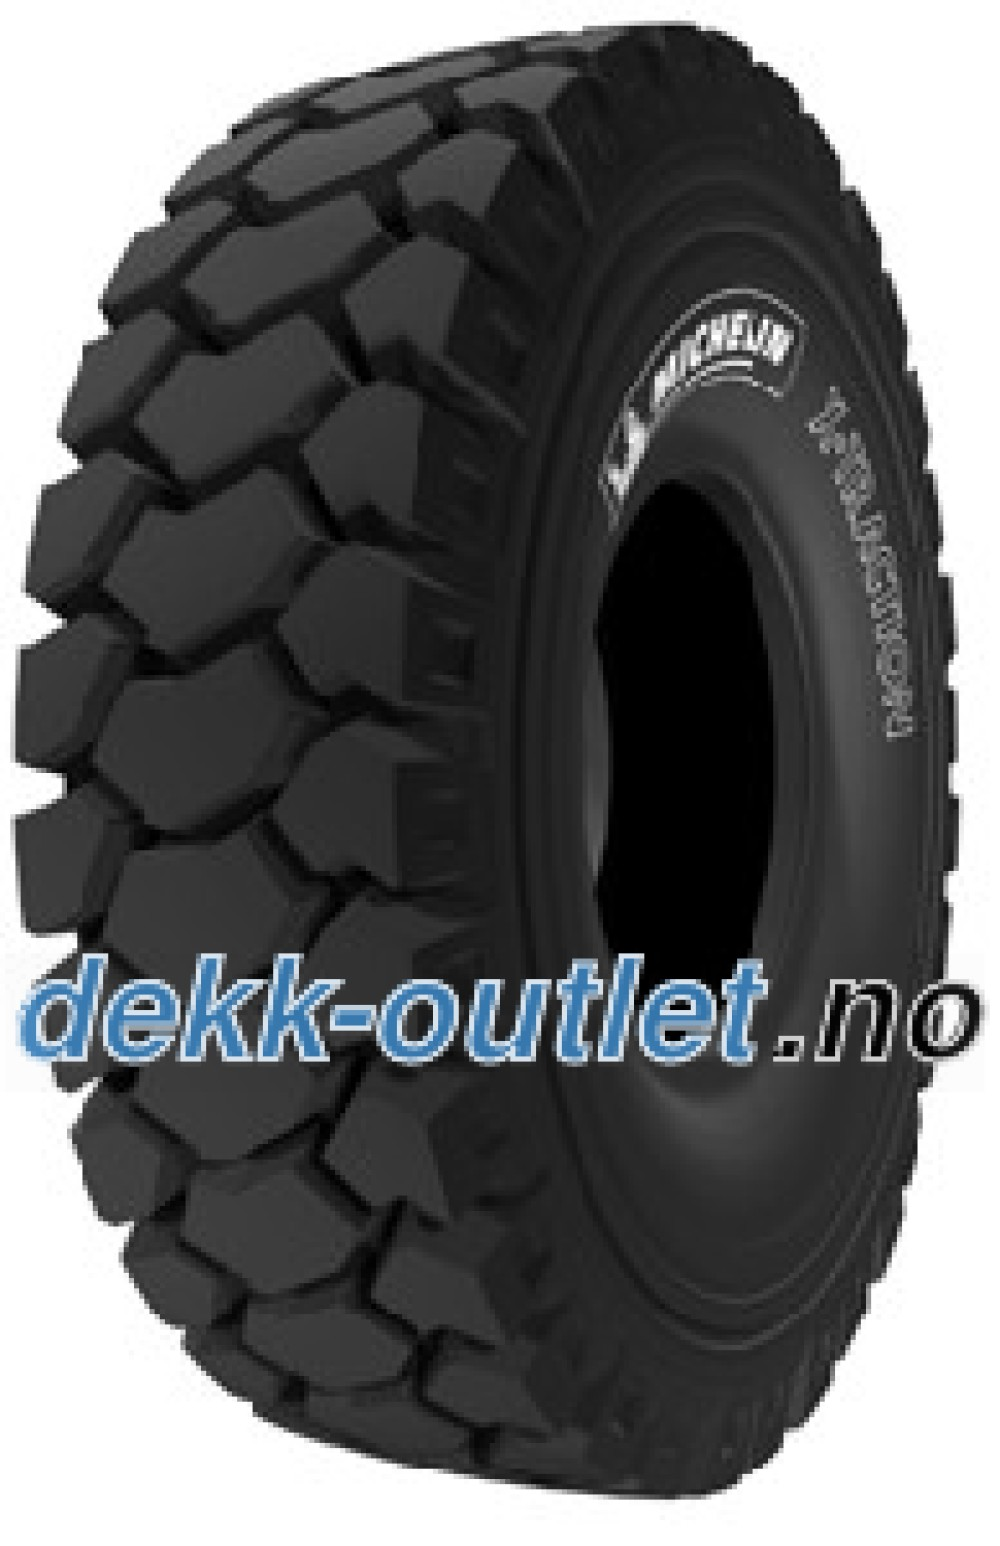 Michelin X-Traction E4T ( 18.00 R33 TL Tragfähigkeit ** )